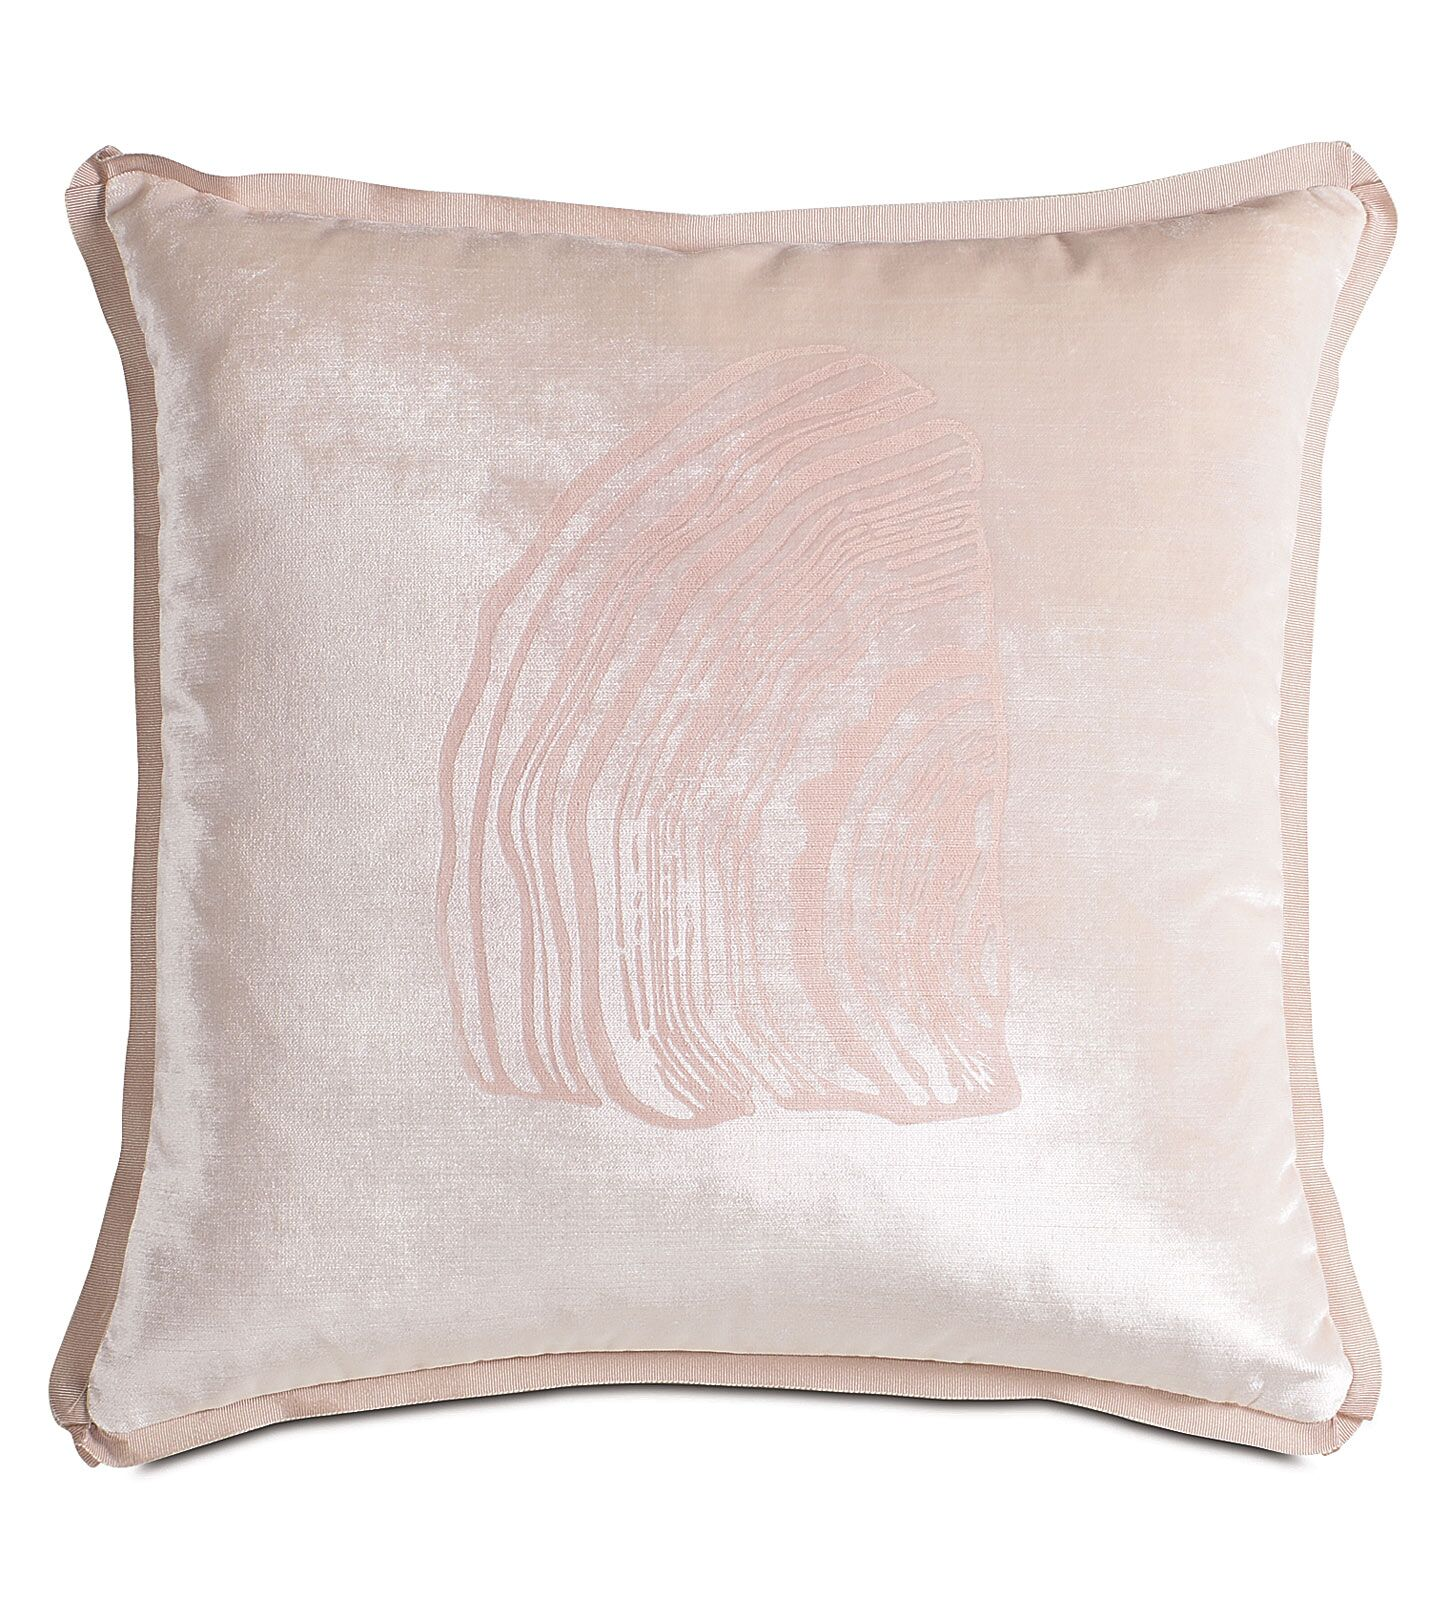 Halo Velda Snow Block-Printed Throw Pillow